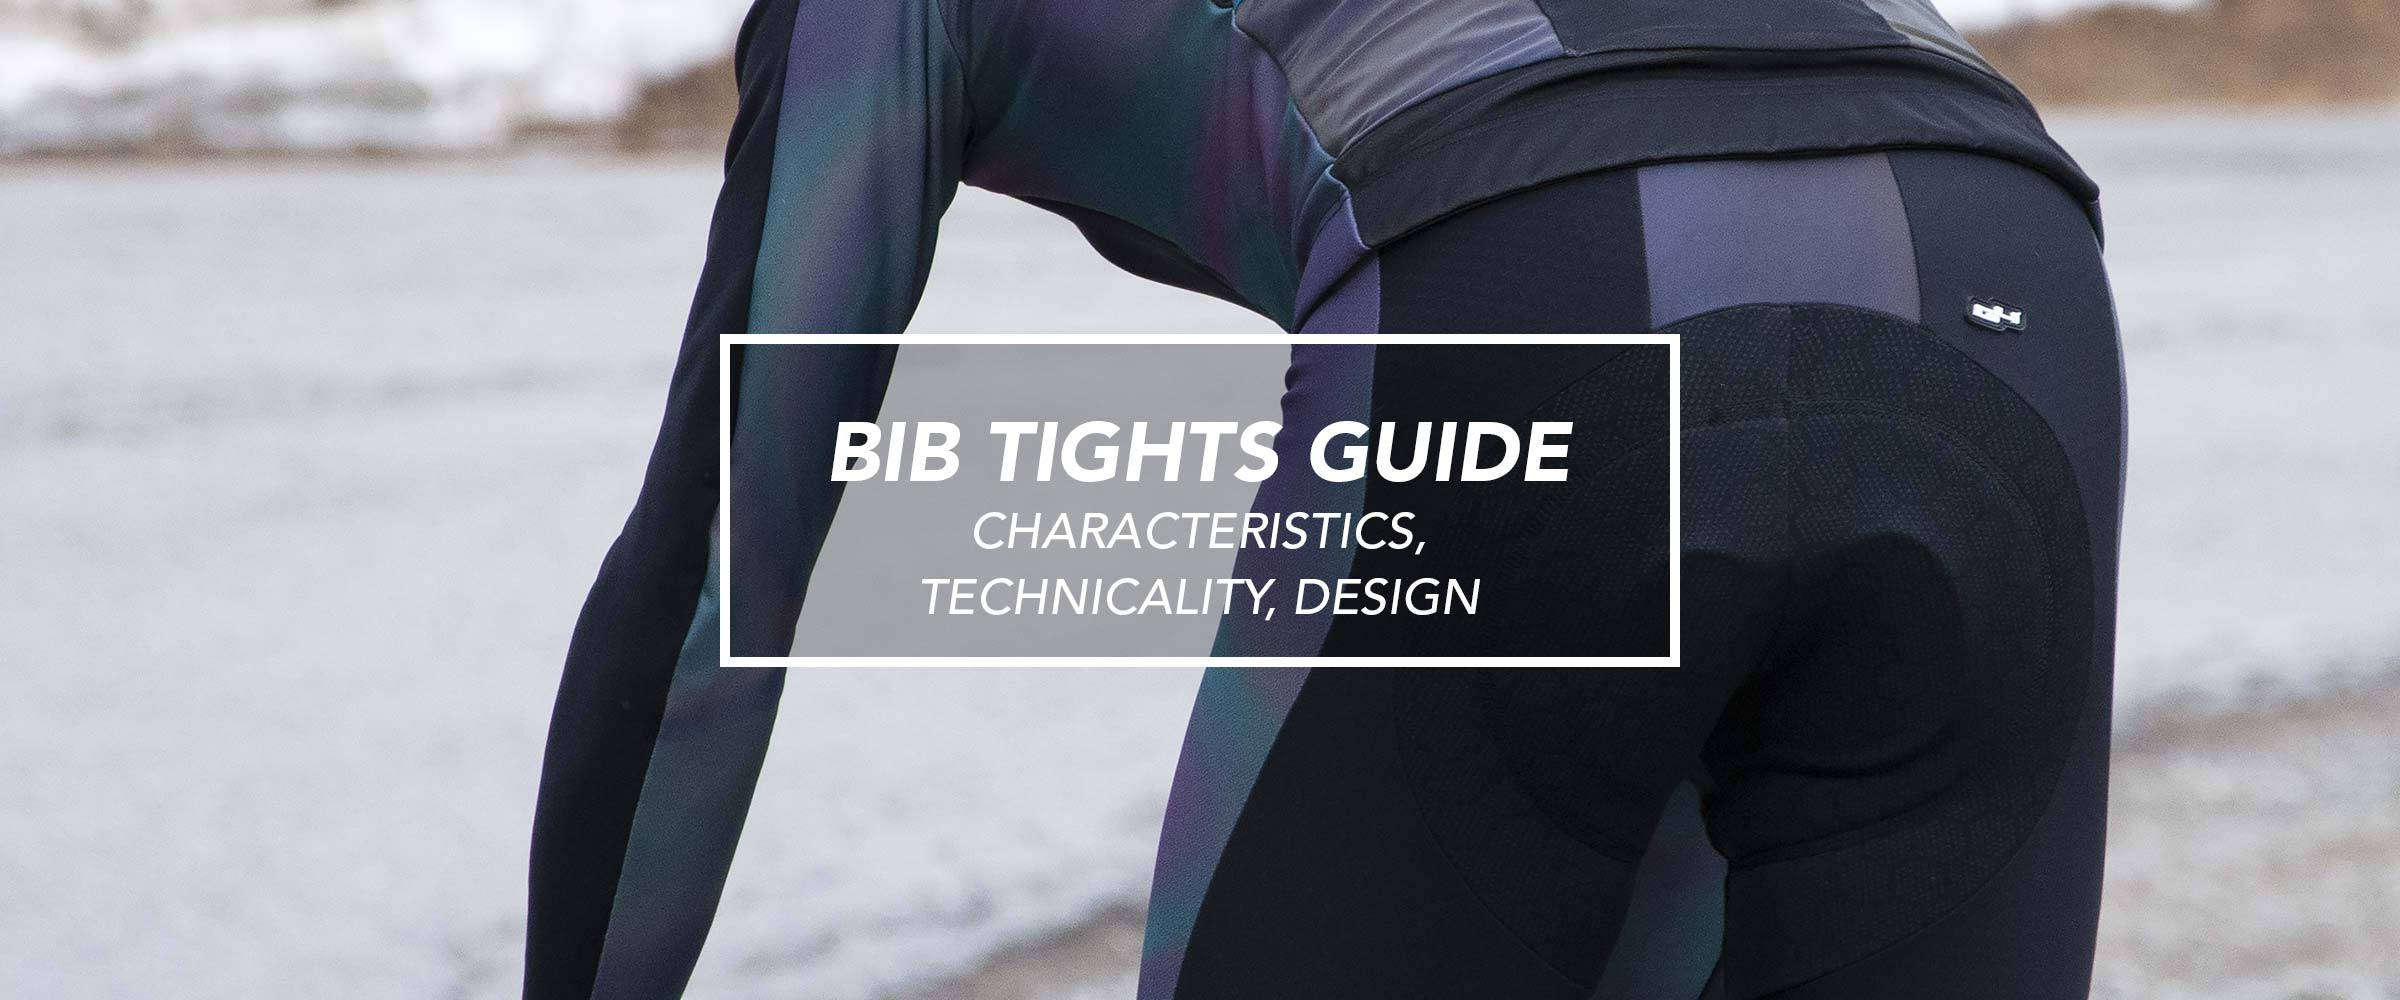 winter-bib-tights-guide.jpg